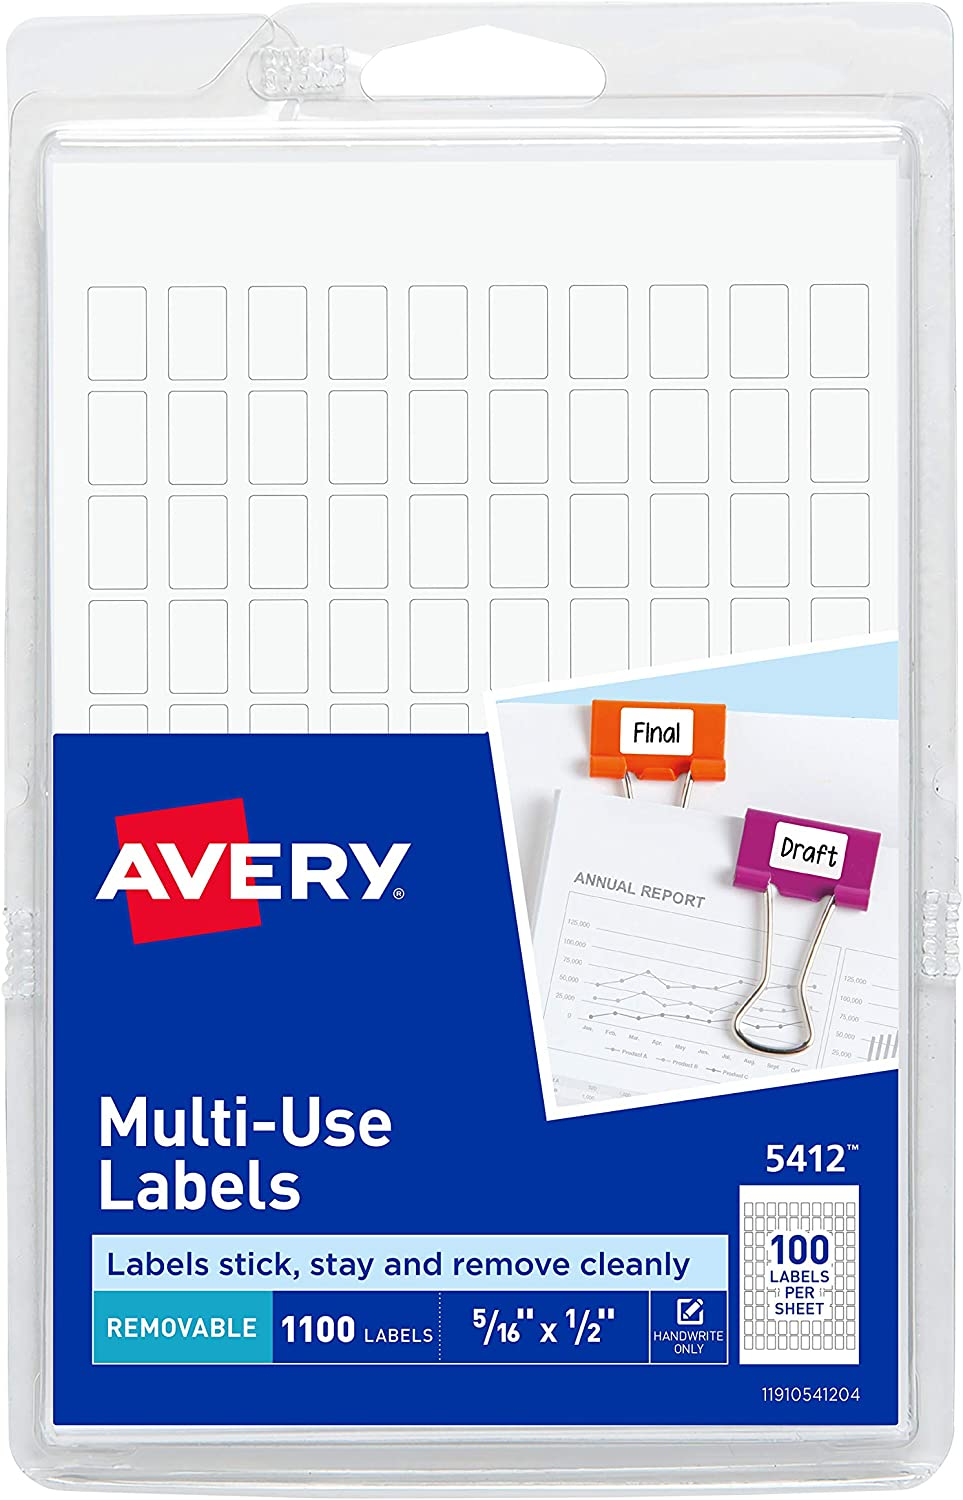 Avery Removable Rectangular Labels, 0.31 x 0.5 Inches, White, Pack of 1100 (5412) : Office Products